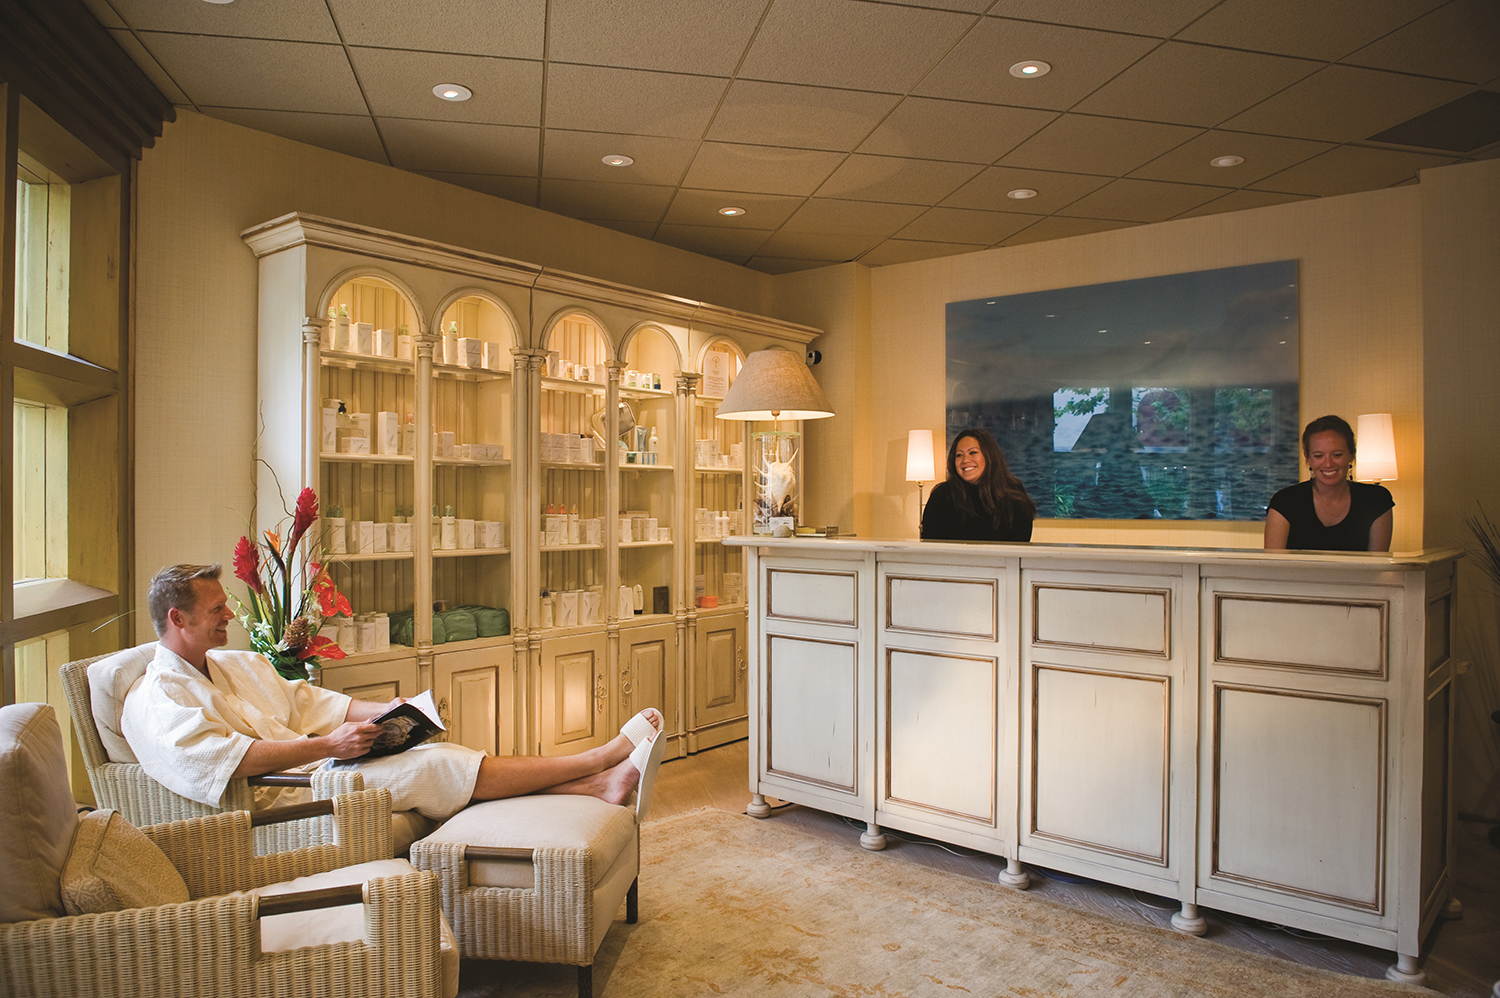 The reception area at Spa on the Plaza.